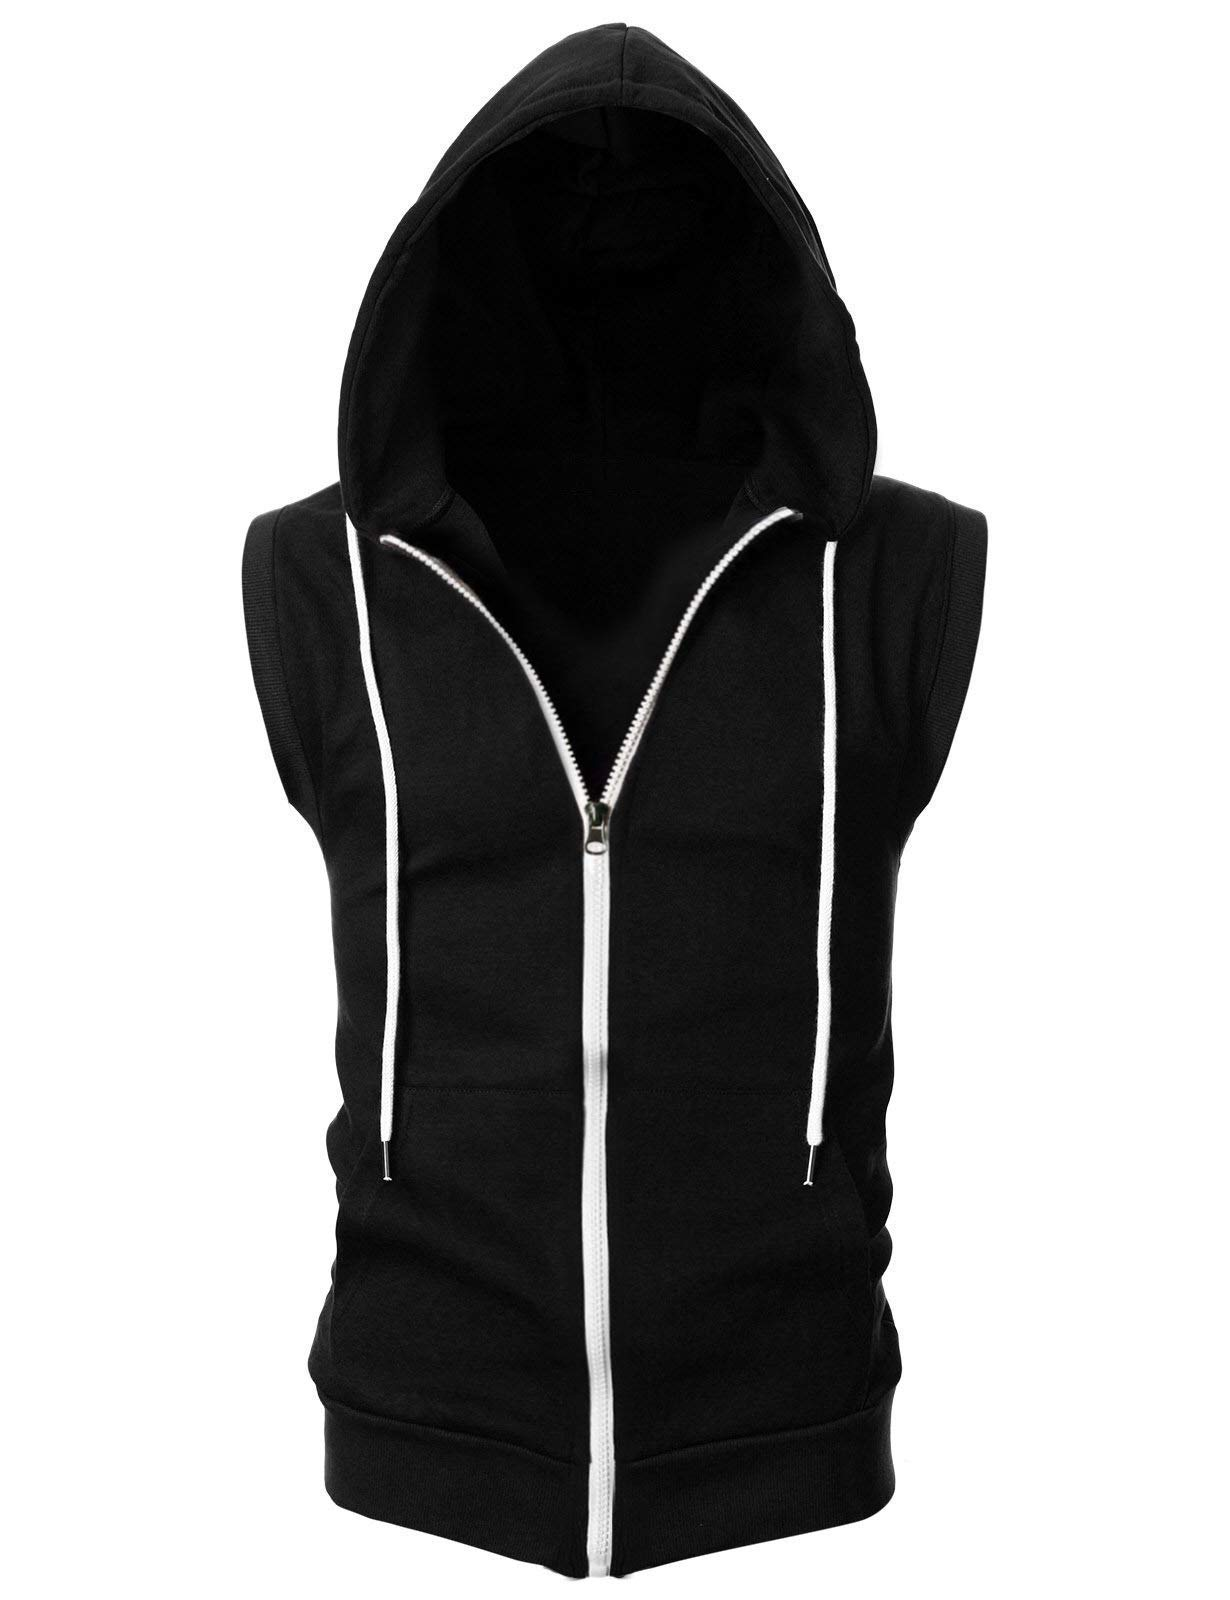 AOOK Gym Hoodie Men Bodybuilding Stringer Tank Top Muscle Sleeveless Shirt (XL, Black LL)